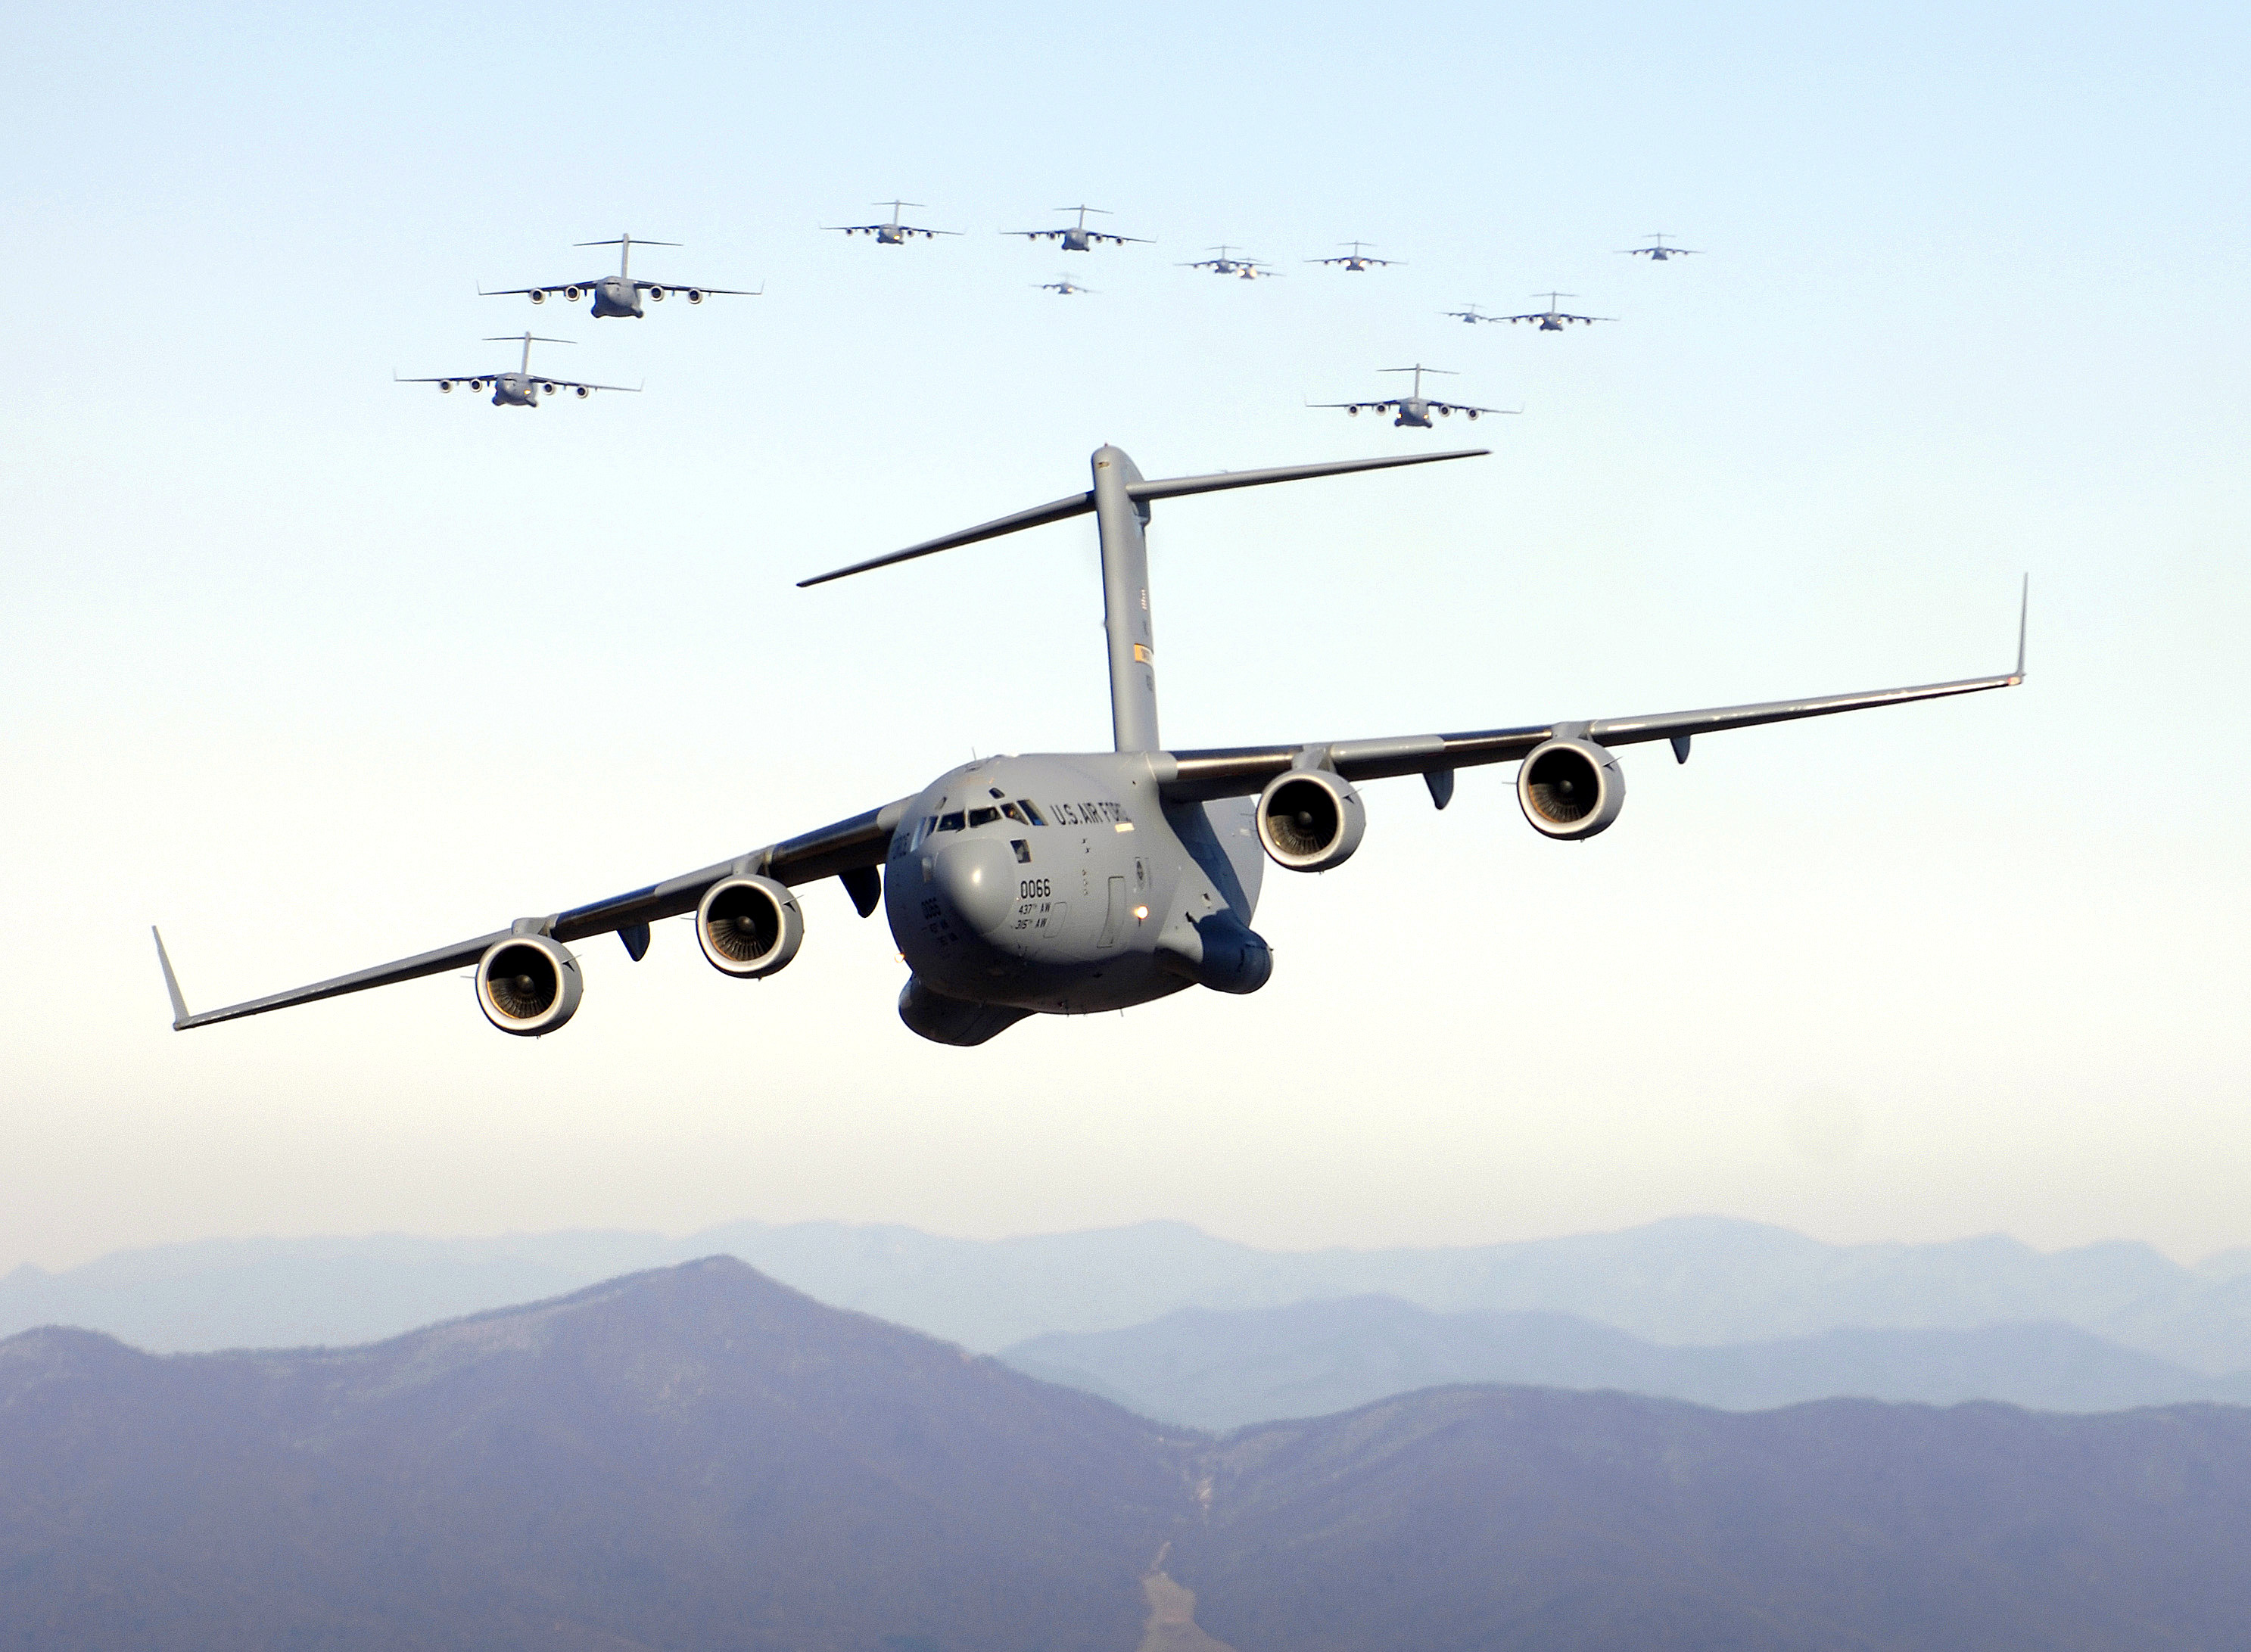 A formation of 17 C-17 Globemaster IIIs fly over the Blue Ridge Mountains in Virginia during low-level tactical training. (U.S. Air Force photo by Staff Sgt. Jacob Bailey)